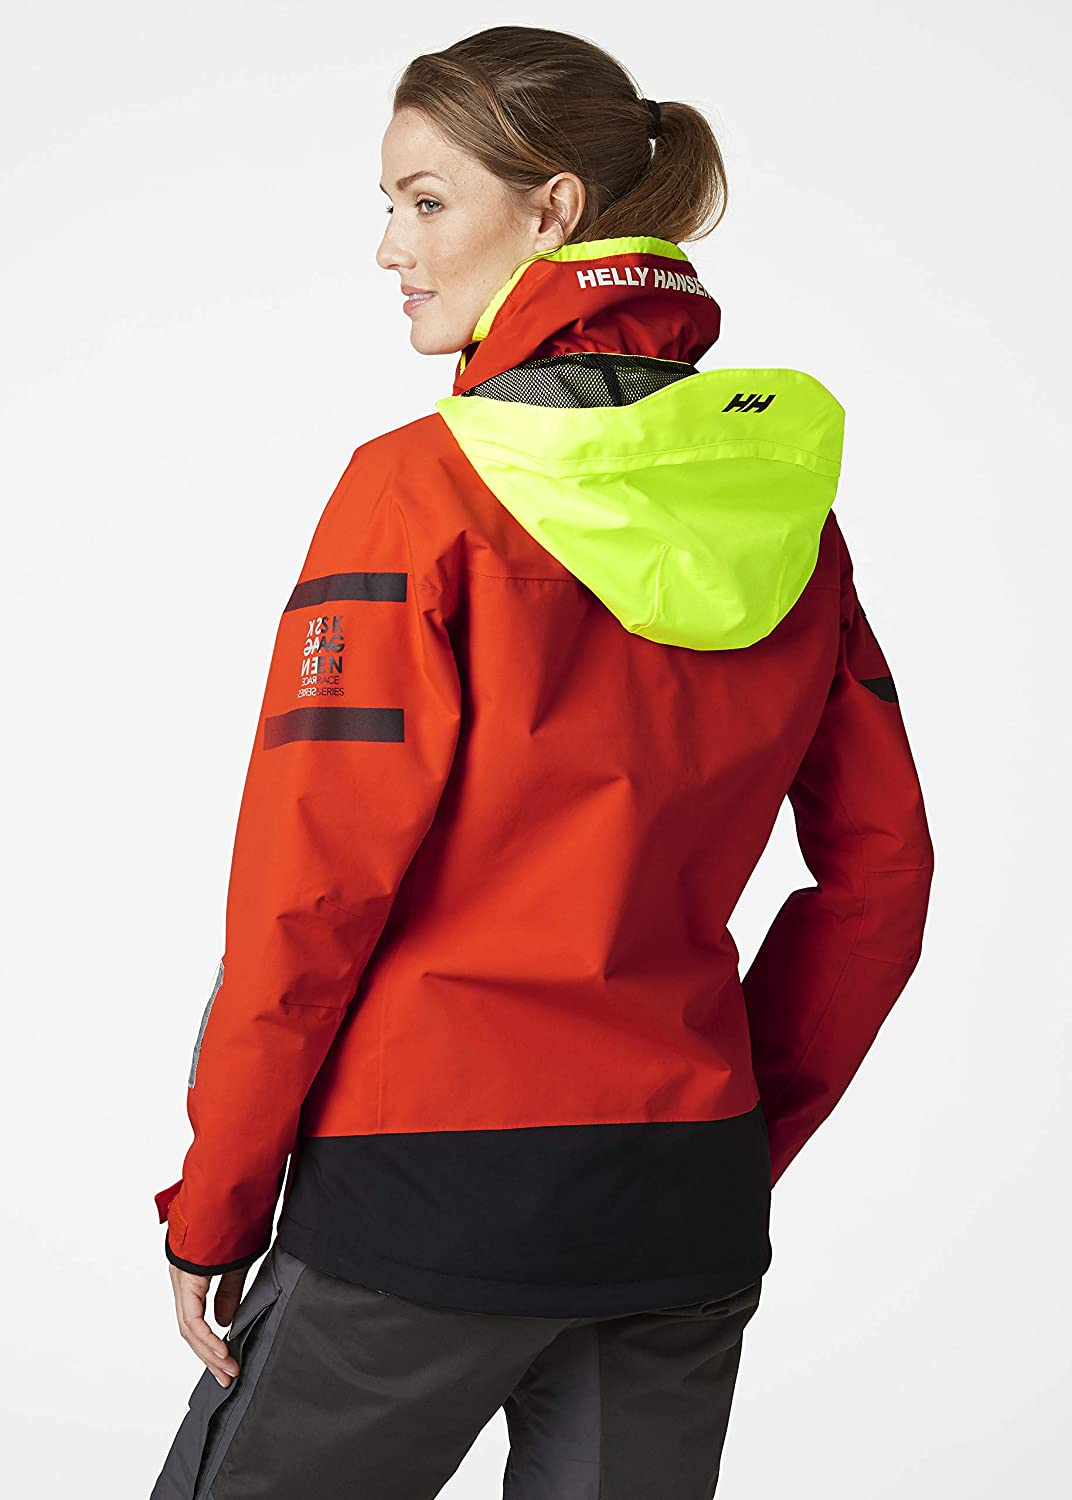 Quick Dry Helly Hansen Womens Skagen Offshore Sailing Yachting and Dinghy Coat Jacket Cherry Tomato